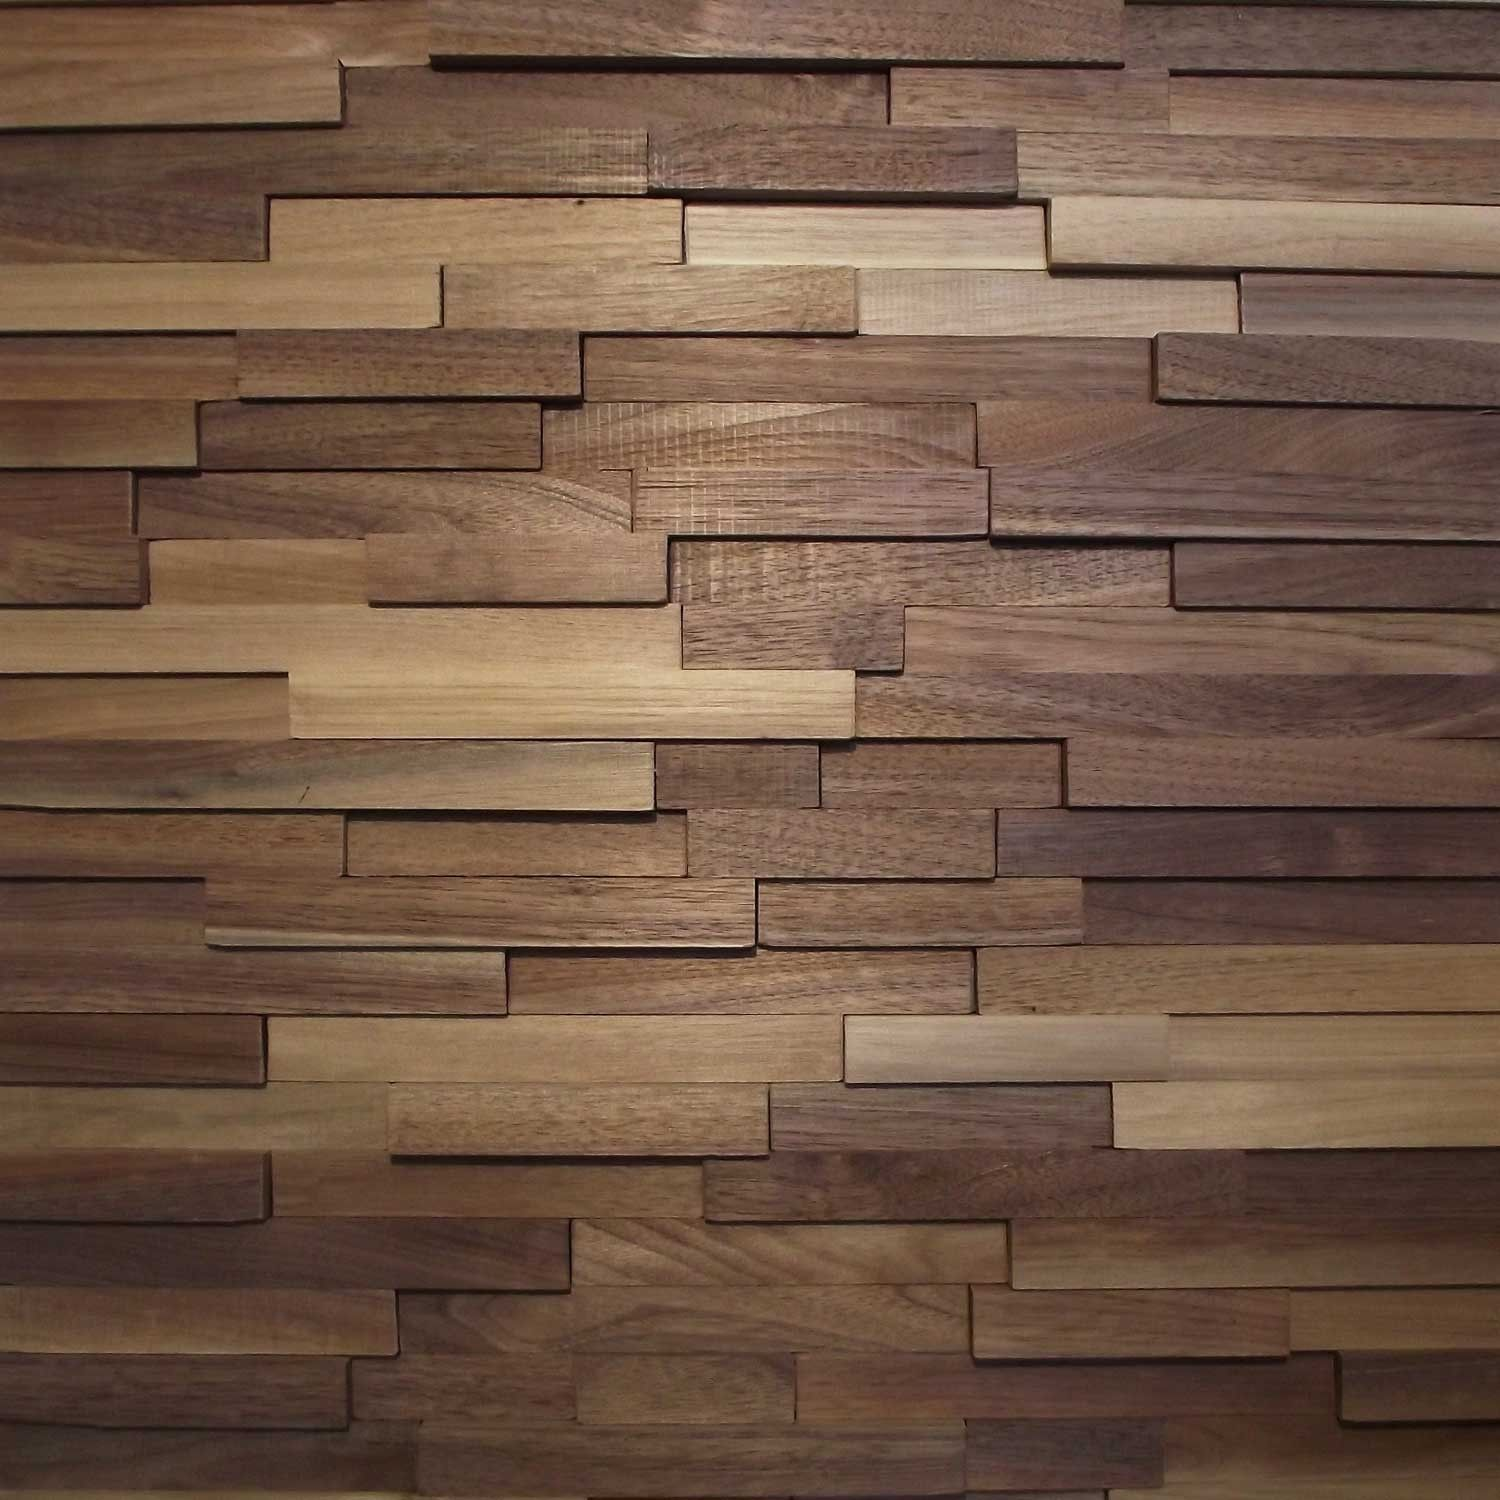 Asi Wood Panels Google Search Wood Panel Wall Decor Wood Wall Covering Wooden Wall Panels